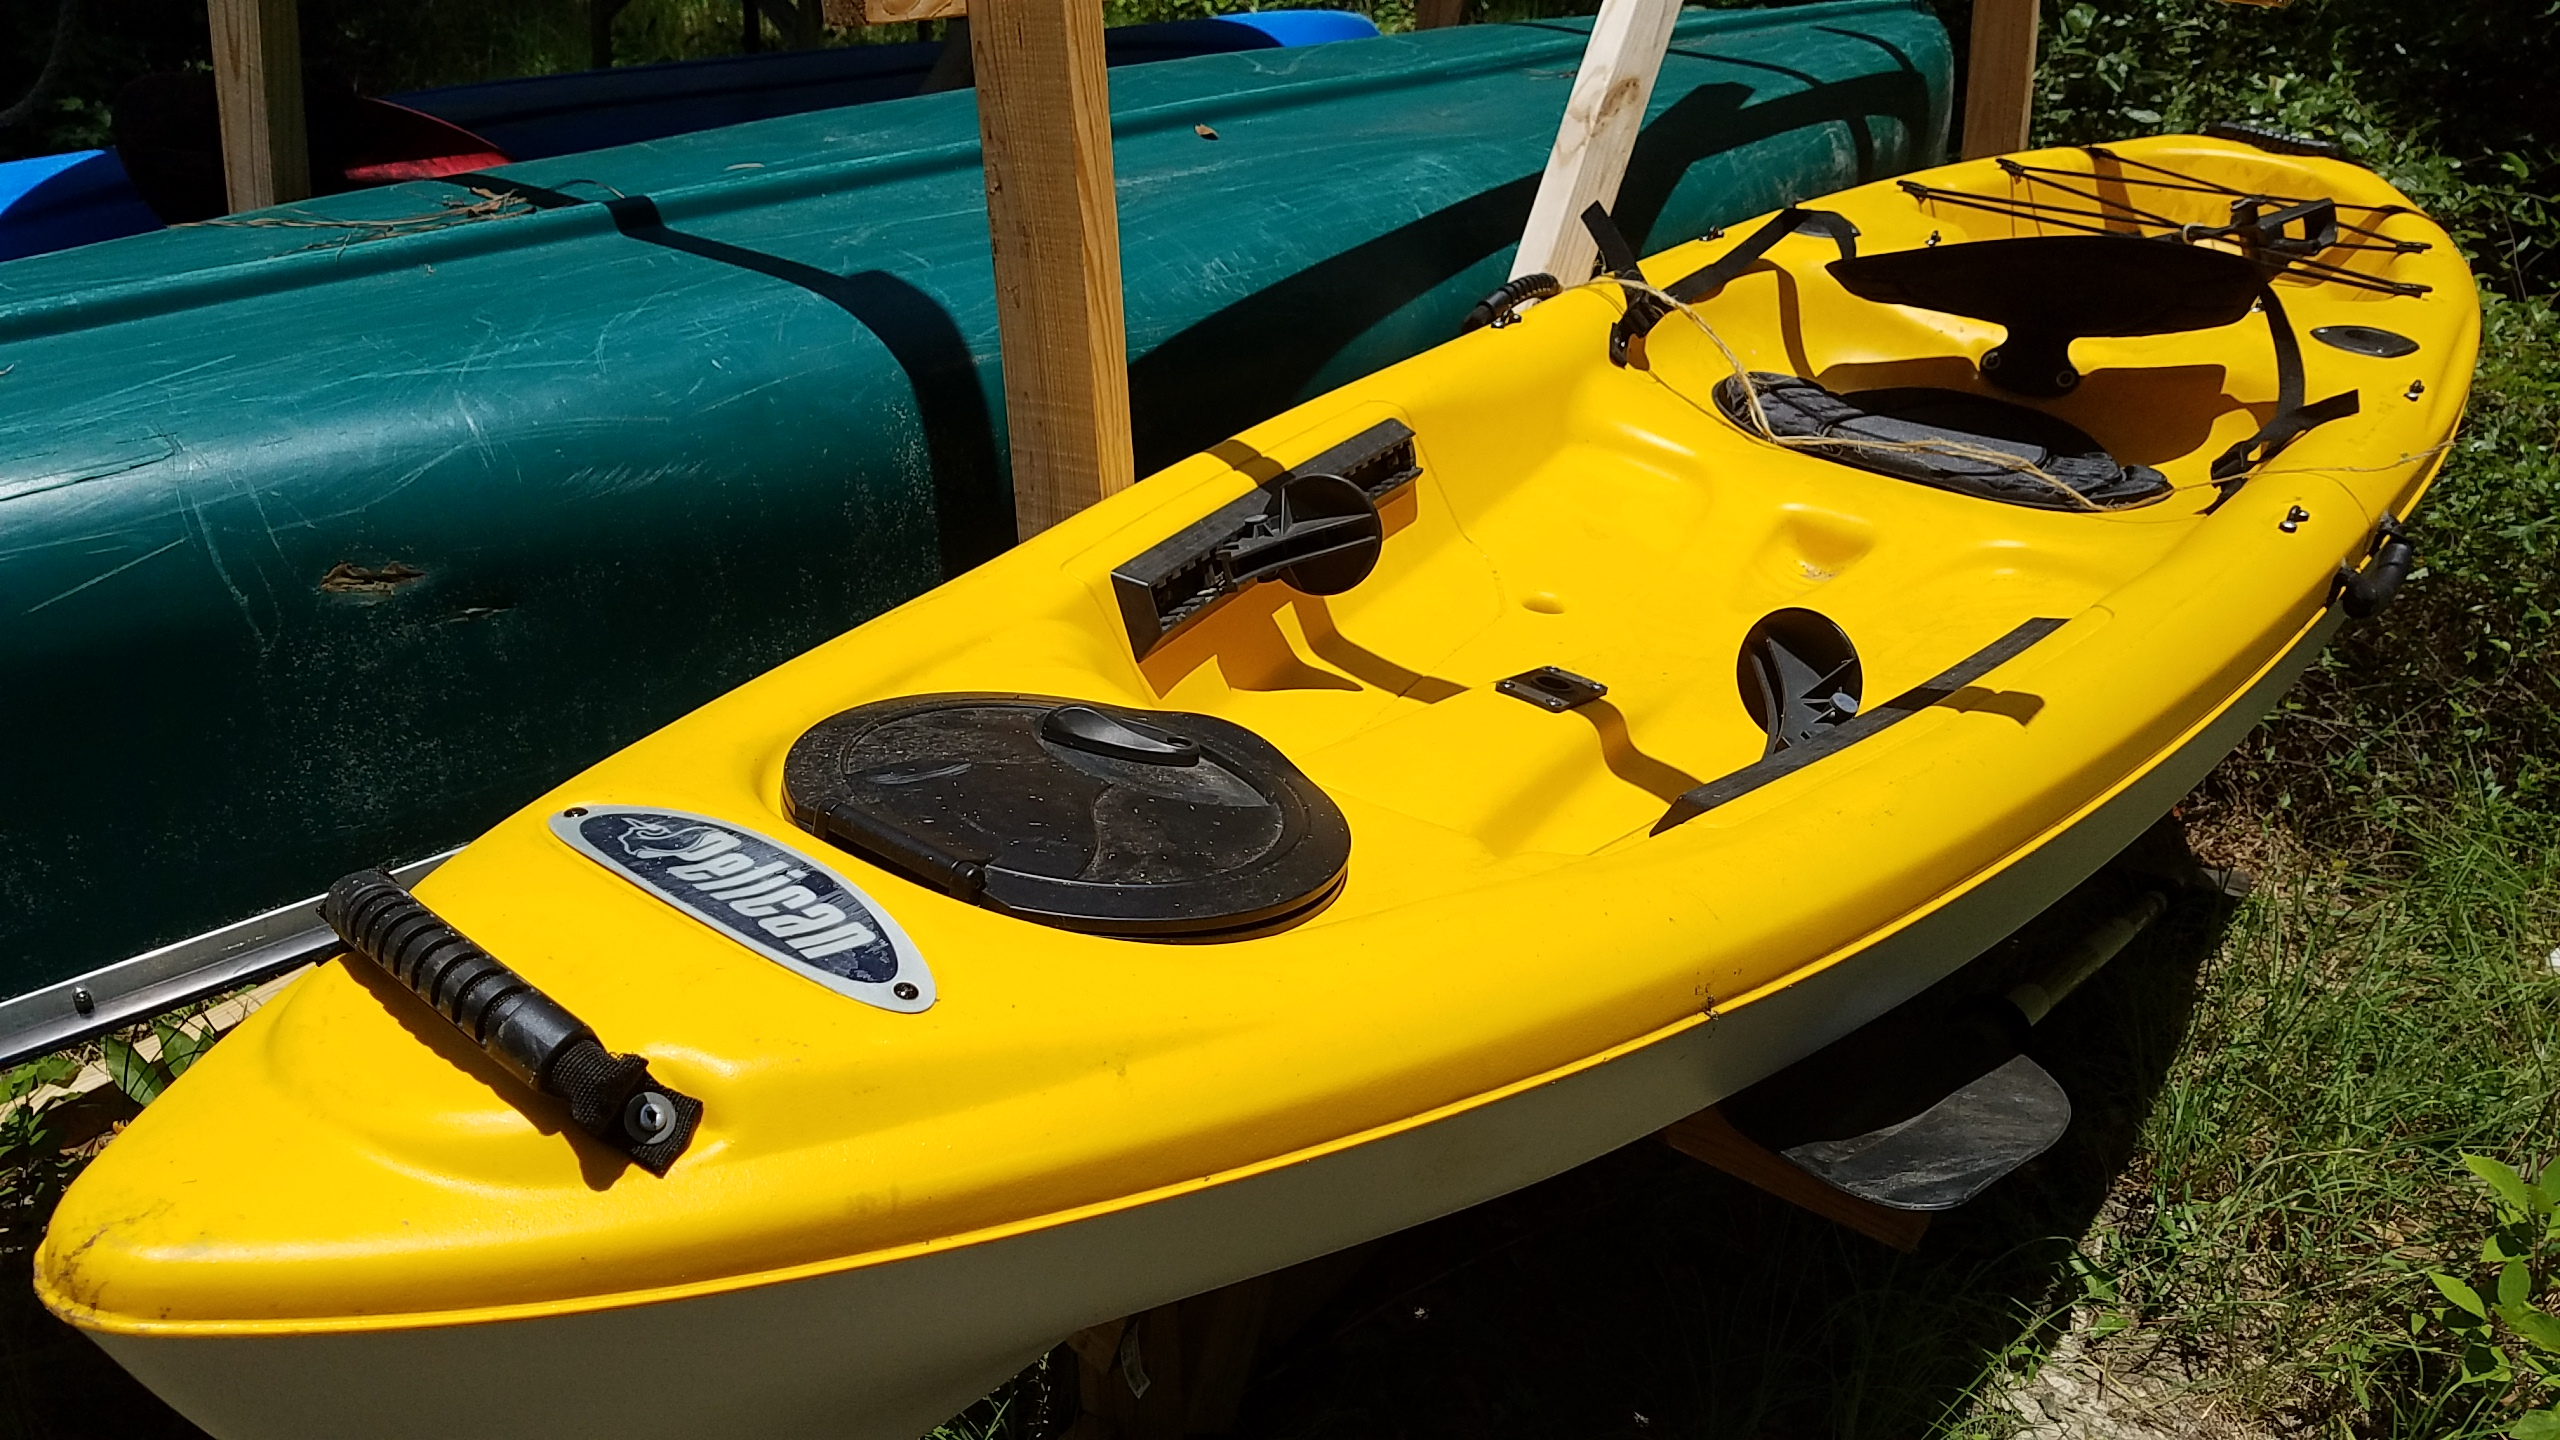 2560x1440 Pelican Icon 100X Angler 10-foot sit-on-top fishing kayak, with paddle, in Raffle Kayak, by John S. Quarterman, for WWALS.net, 8 July 2017